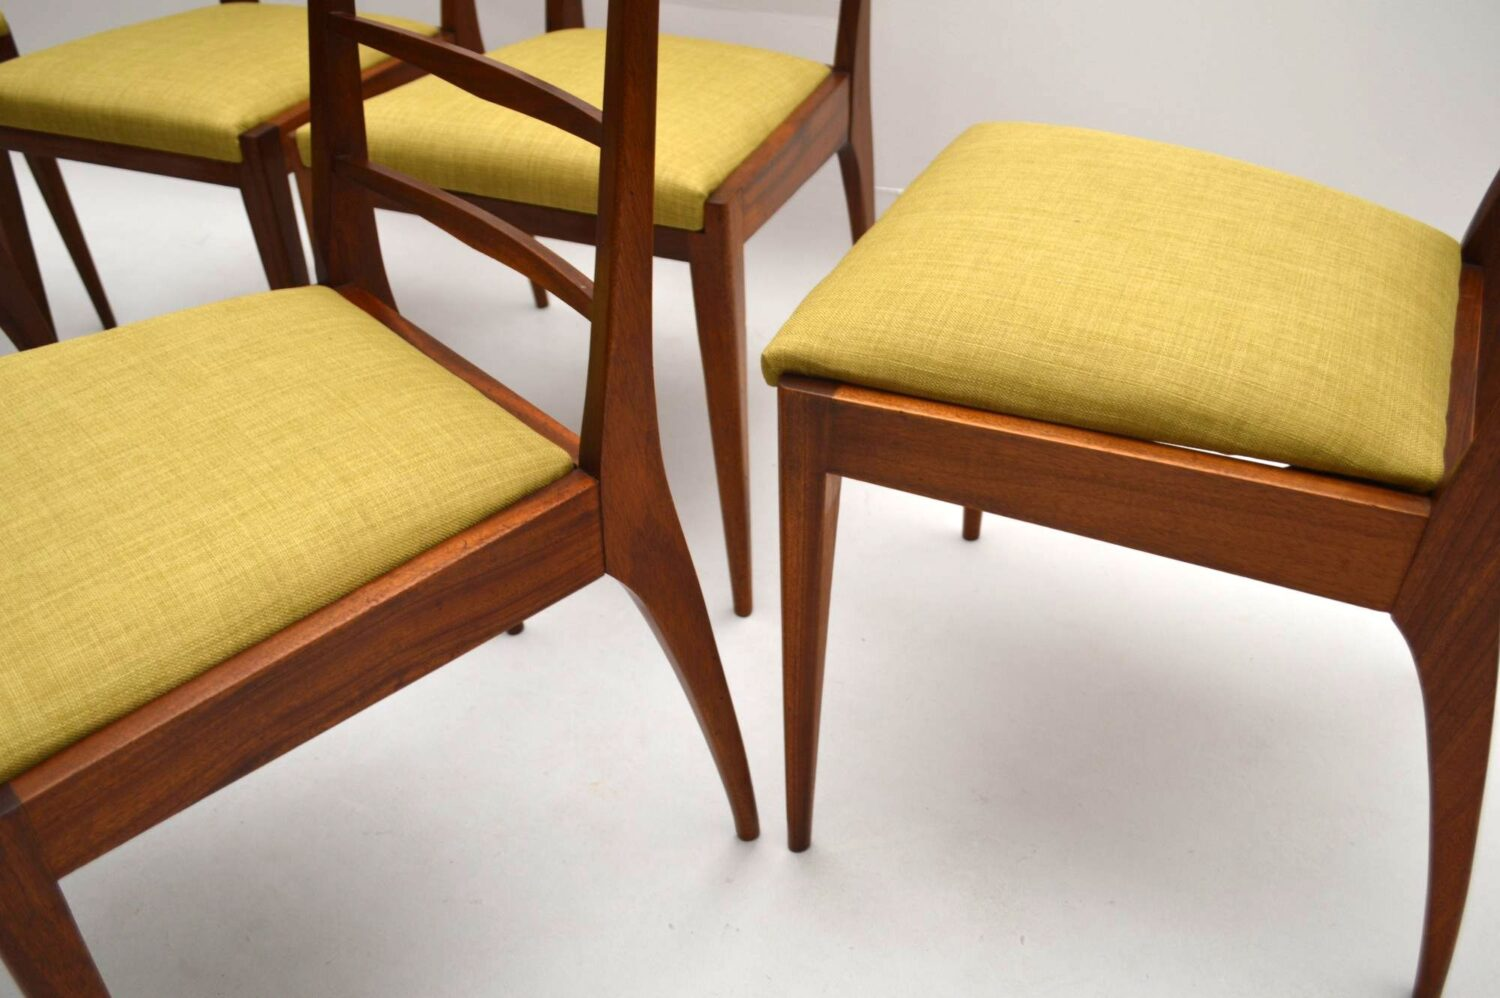 Set Of 6 Retro Teak Dining Chairs By Mcintosh Vintage 1960 S Retrospective Interiors Retro Furniture Vintage Mid Century Furniture Vintage Danish Modern Furniture Antique Furniture London